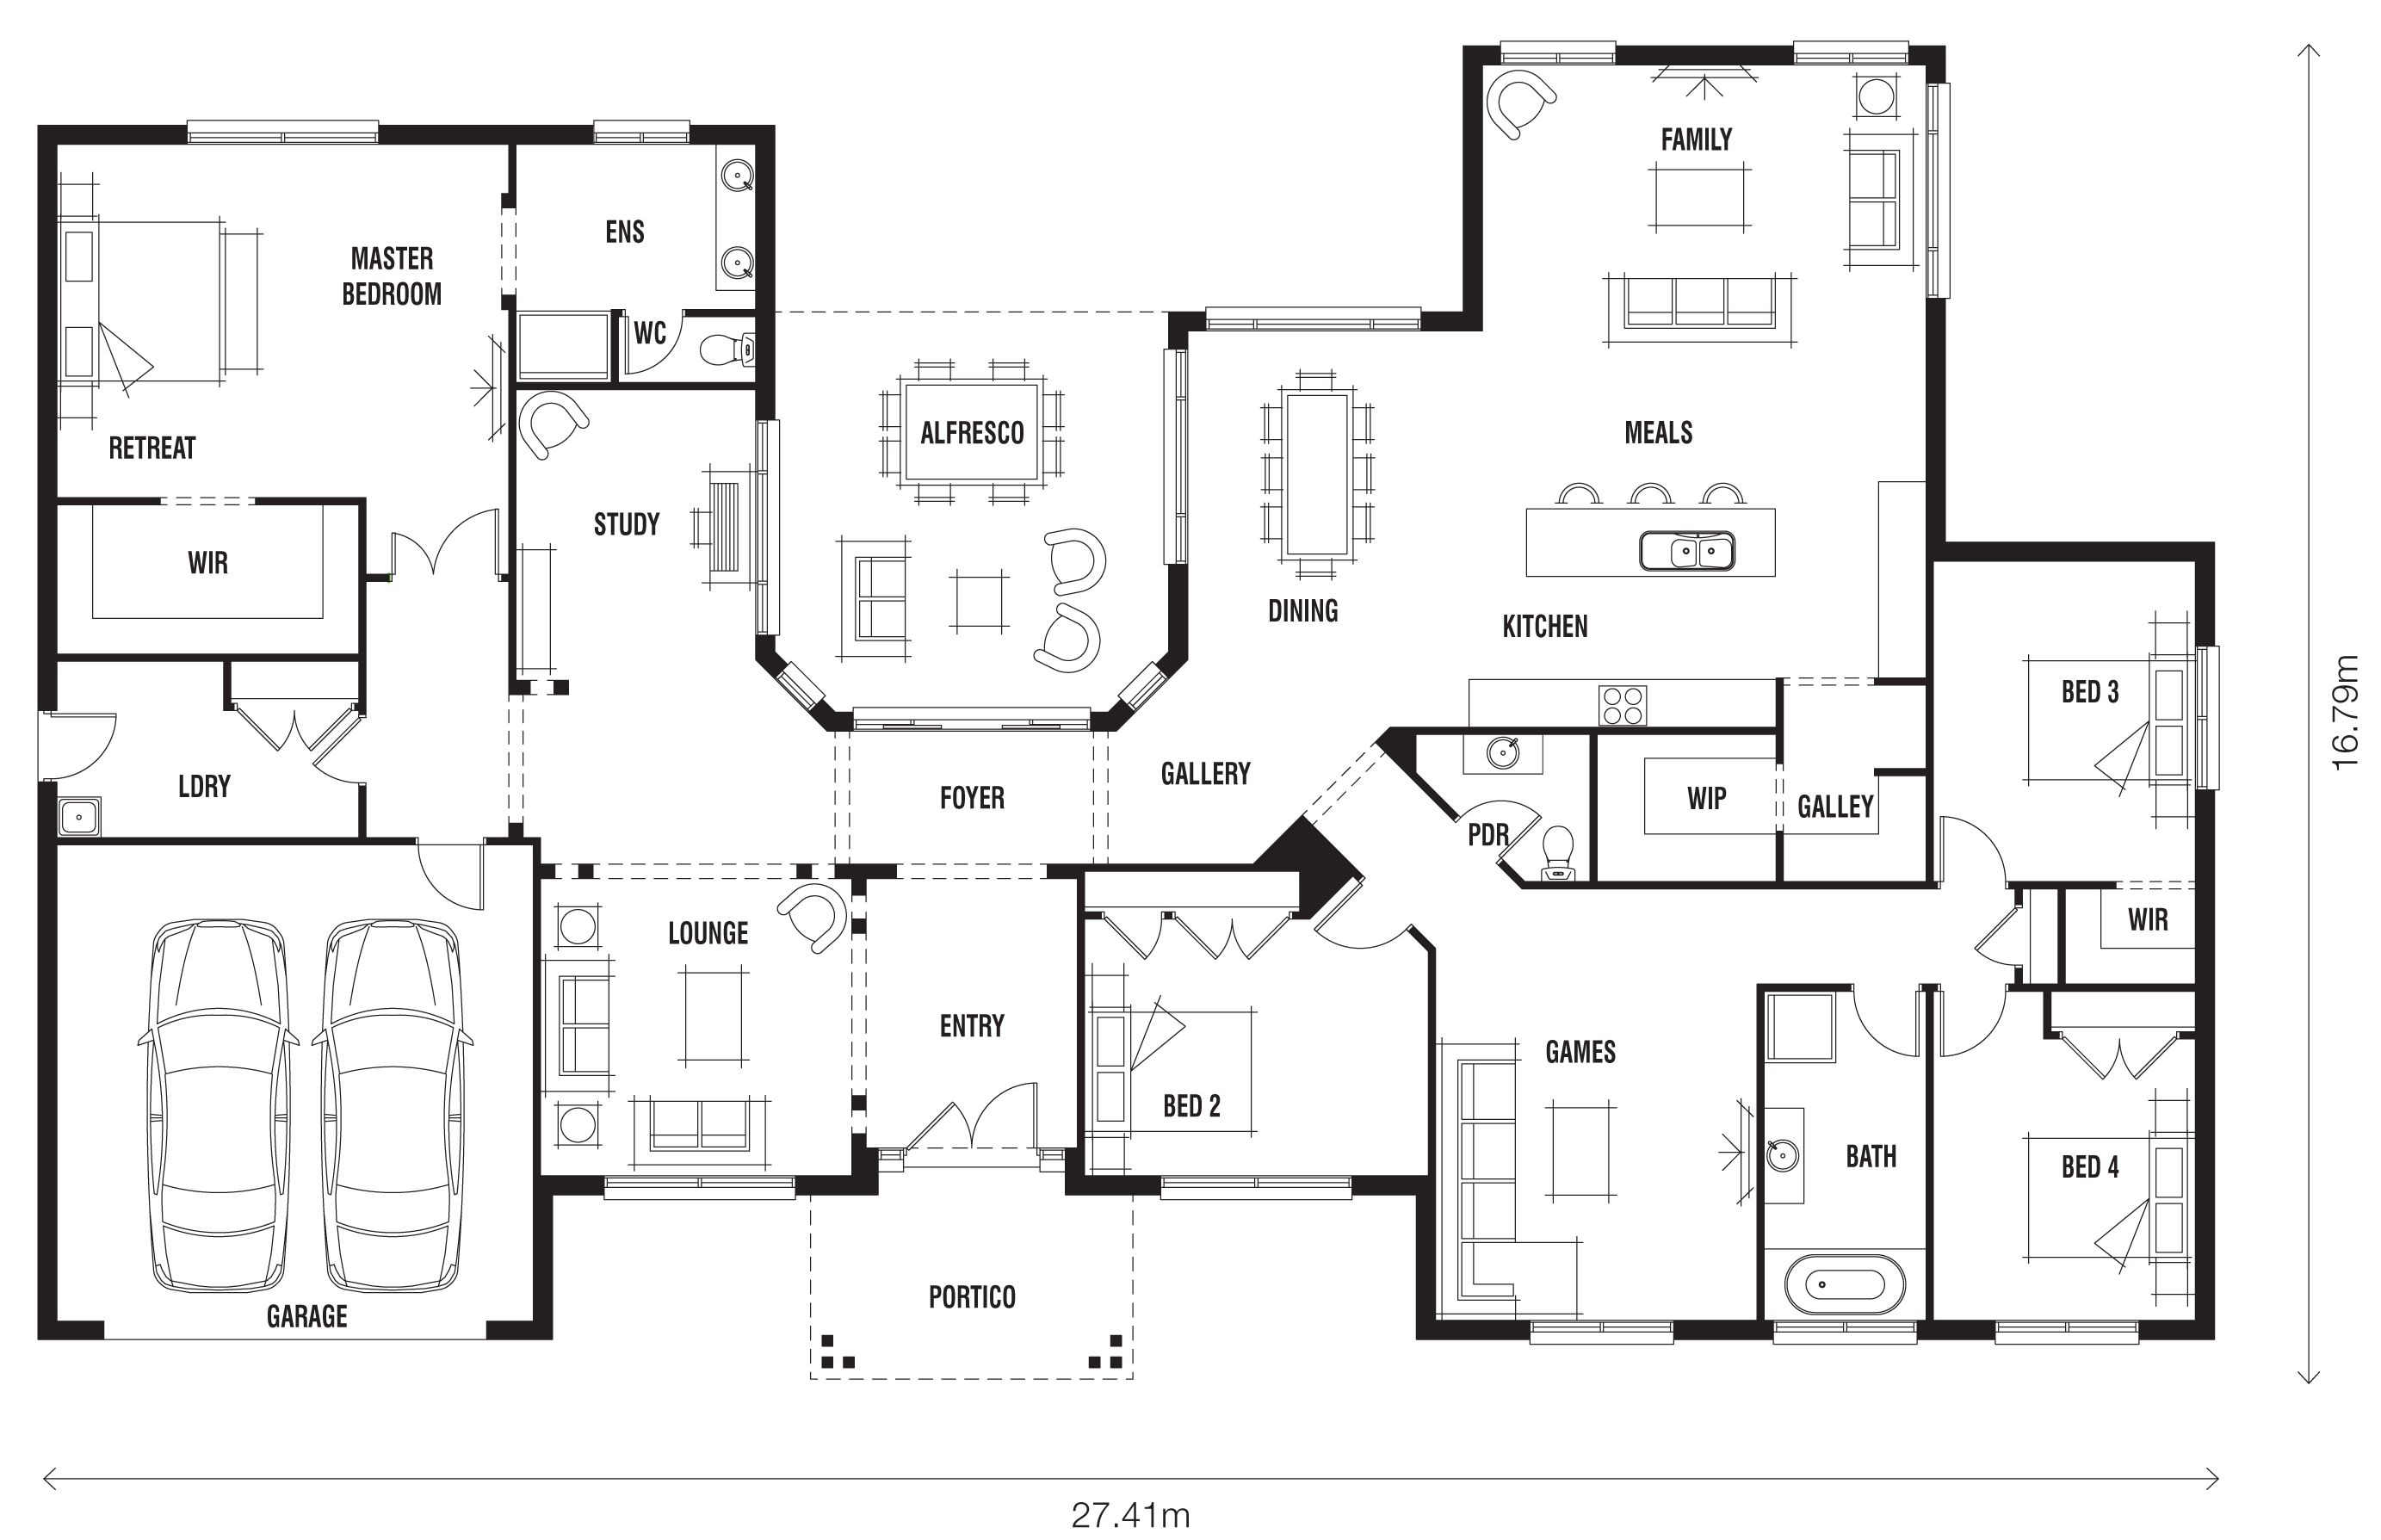 Floor Plan Friday: Innovative ranch-style home | U shaped ... on unique ranch house plans, 5-bedroom open floor plans, luxury home plans, best open floor plans, ranch style modular home floor plans, best ranch house plans, raised ranch floor plans, luxury prairie house plans, simple ranch floor plans, large open ranch plans, luxury ranch living room, luxury ranch interior design, large ranch house plans, ranch style open floor plans, small luxury house plans, large ranch style home plans, 5 bedroom ranch house plans, ranch home designs floor plans, ranch style house plans, great one story house plans,